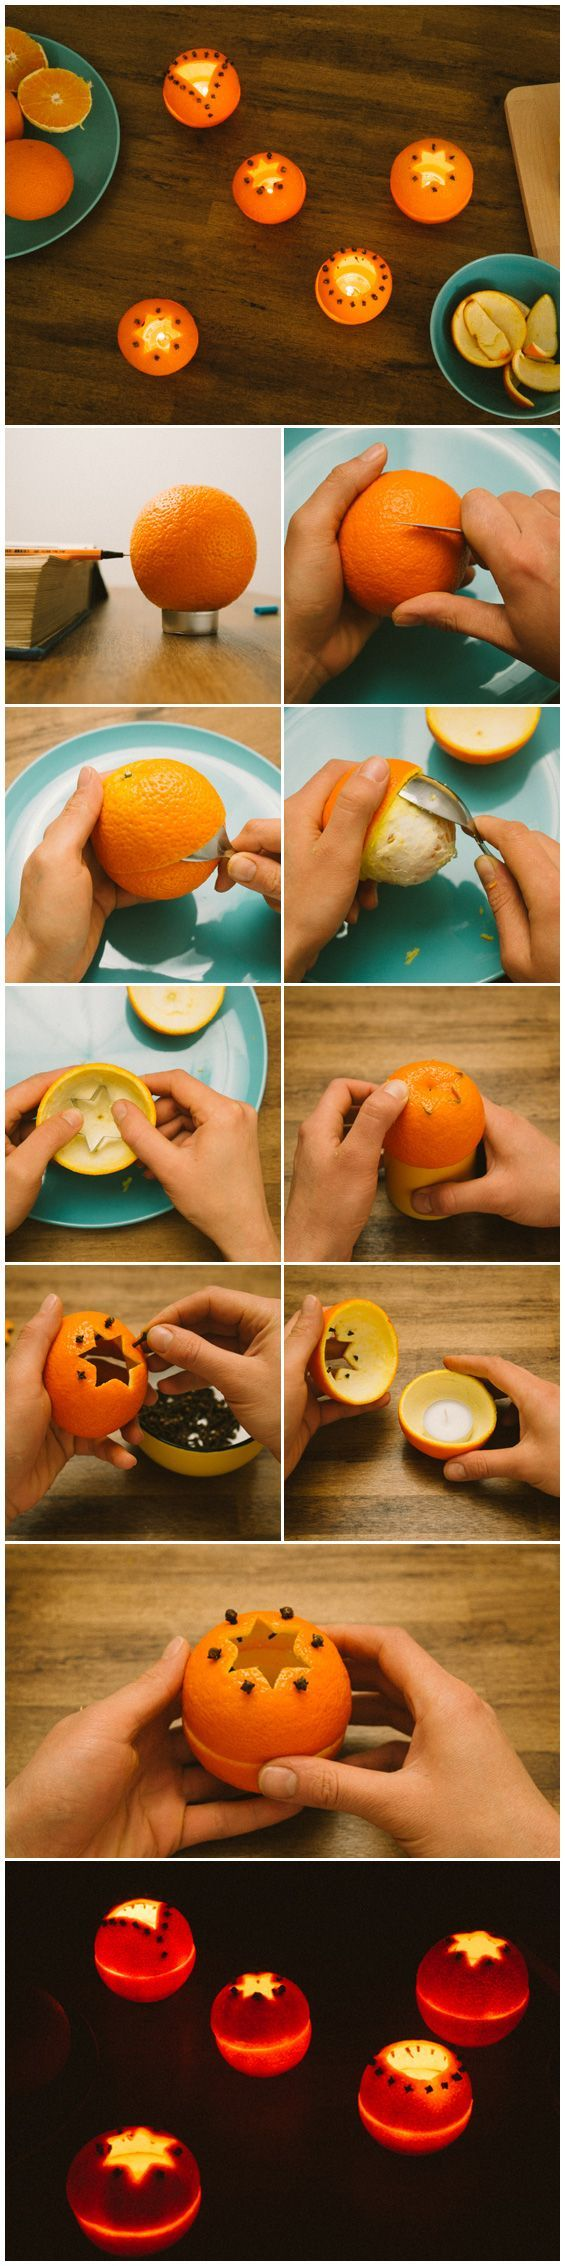 Oranges and Cinnamon! #DIY #crafts